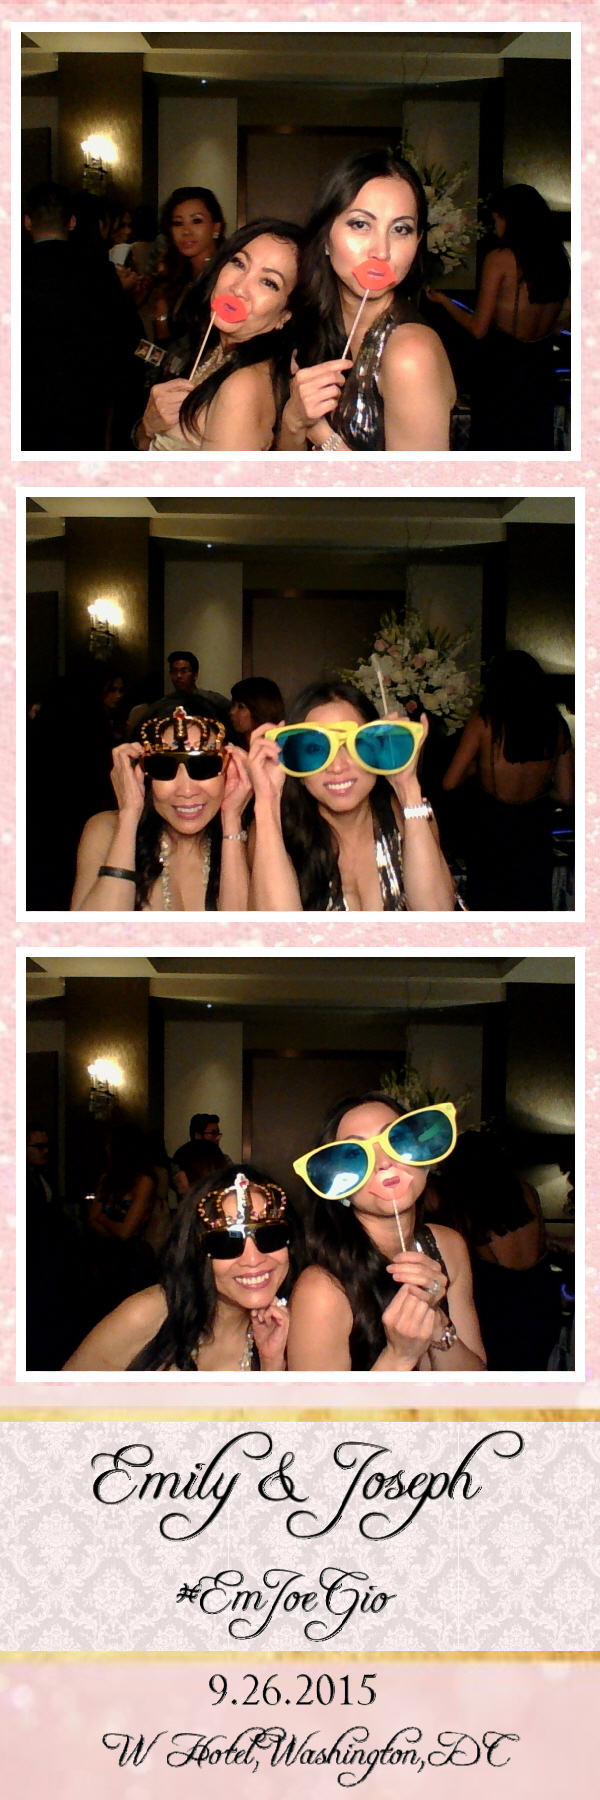 Guest House Events Photo Booth E&J (16).jpg